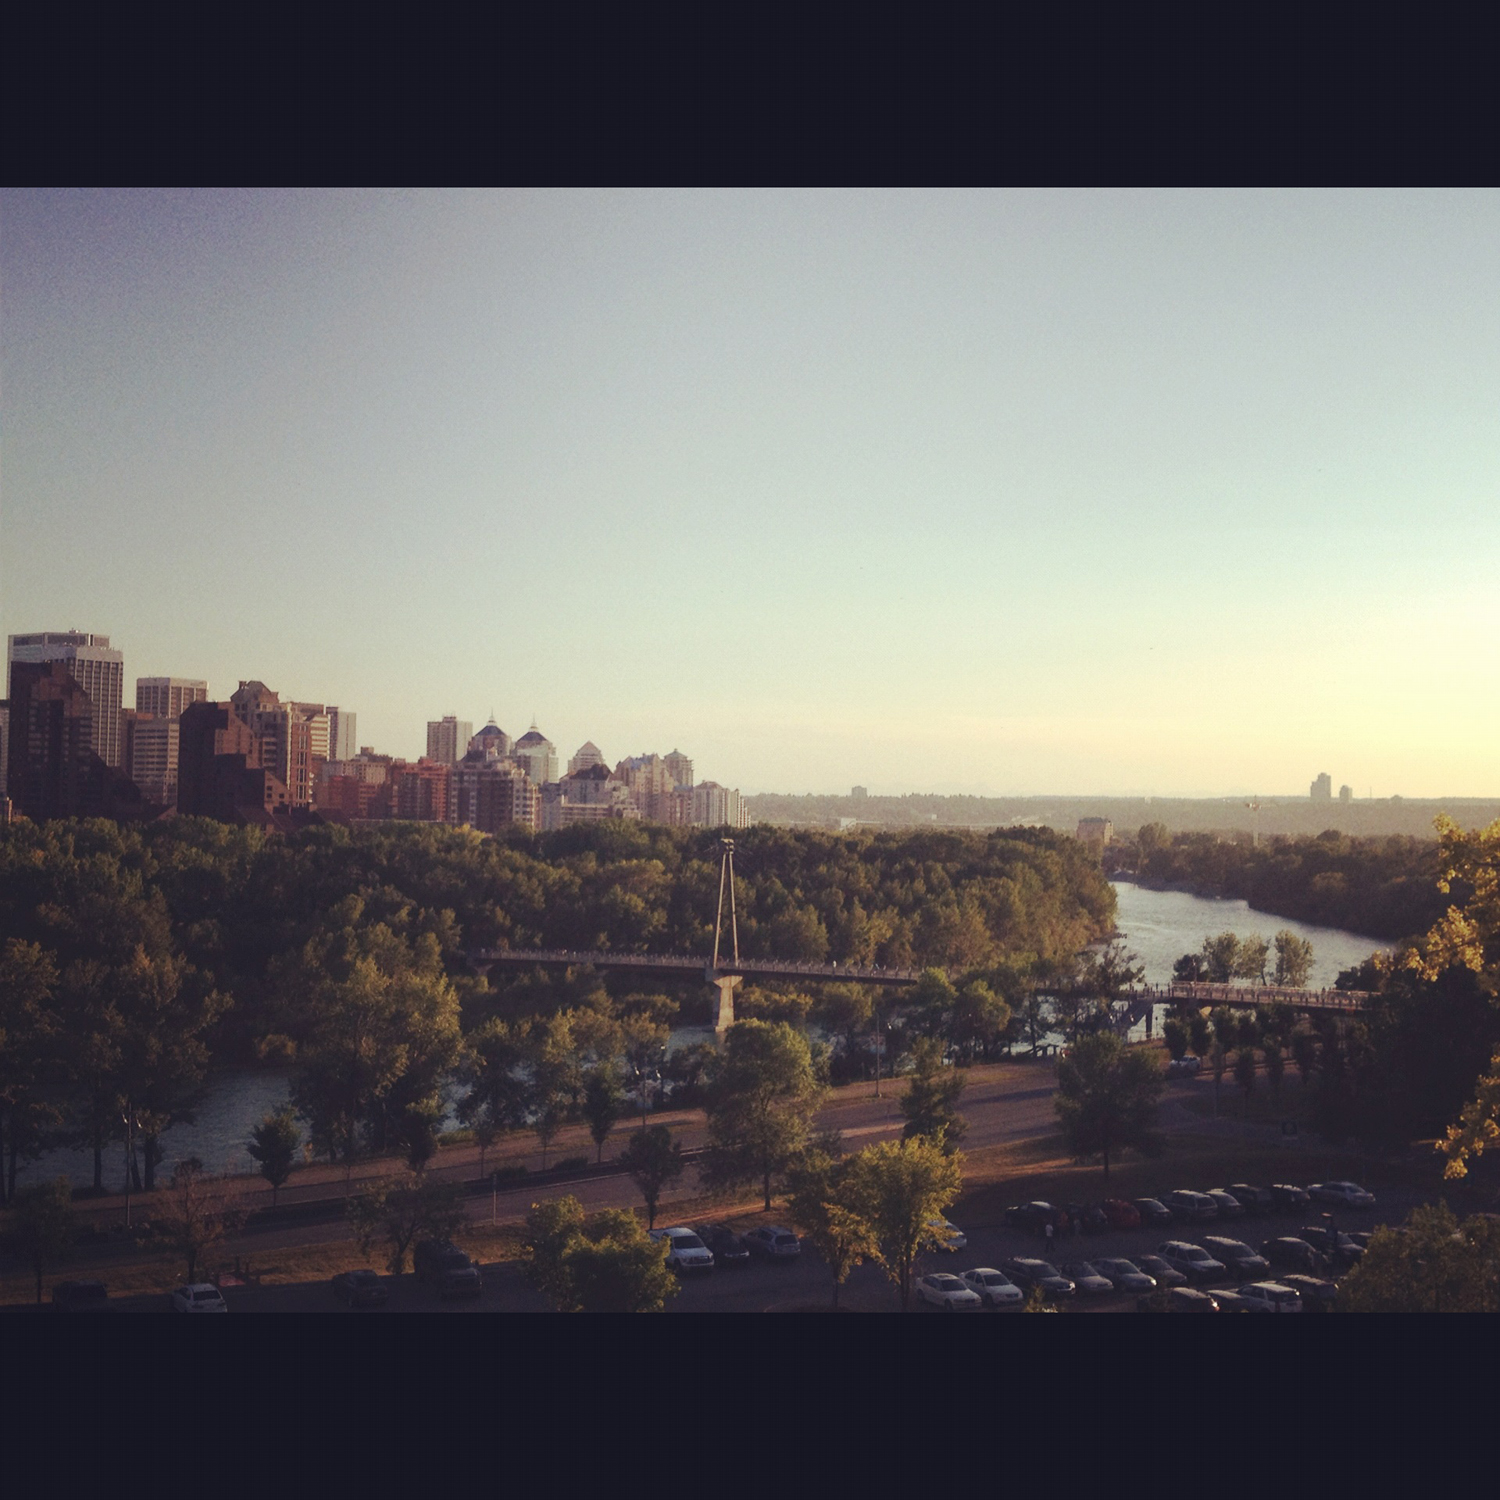 A view of Prince's Island Park and the Bow River from McHugh Bluff Park.